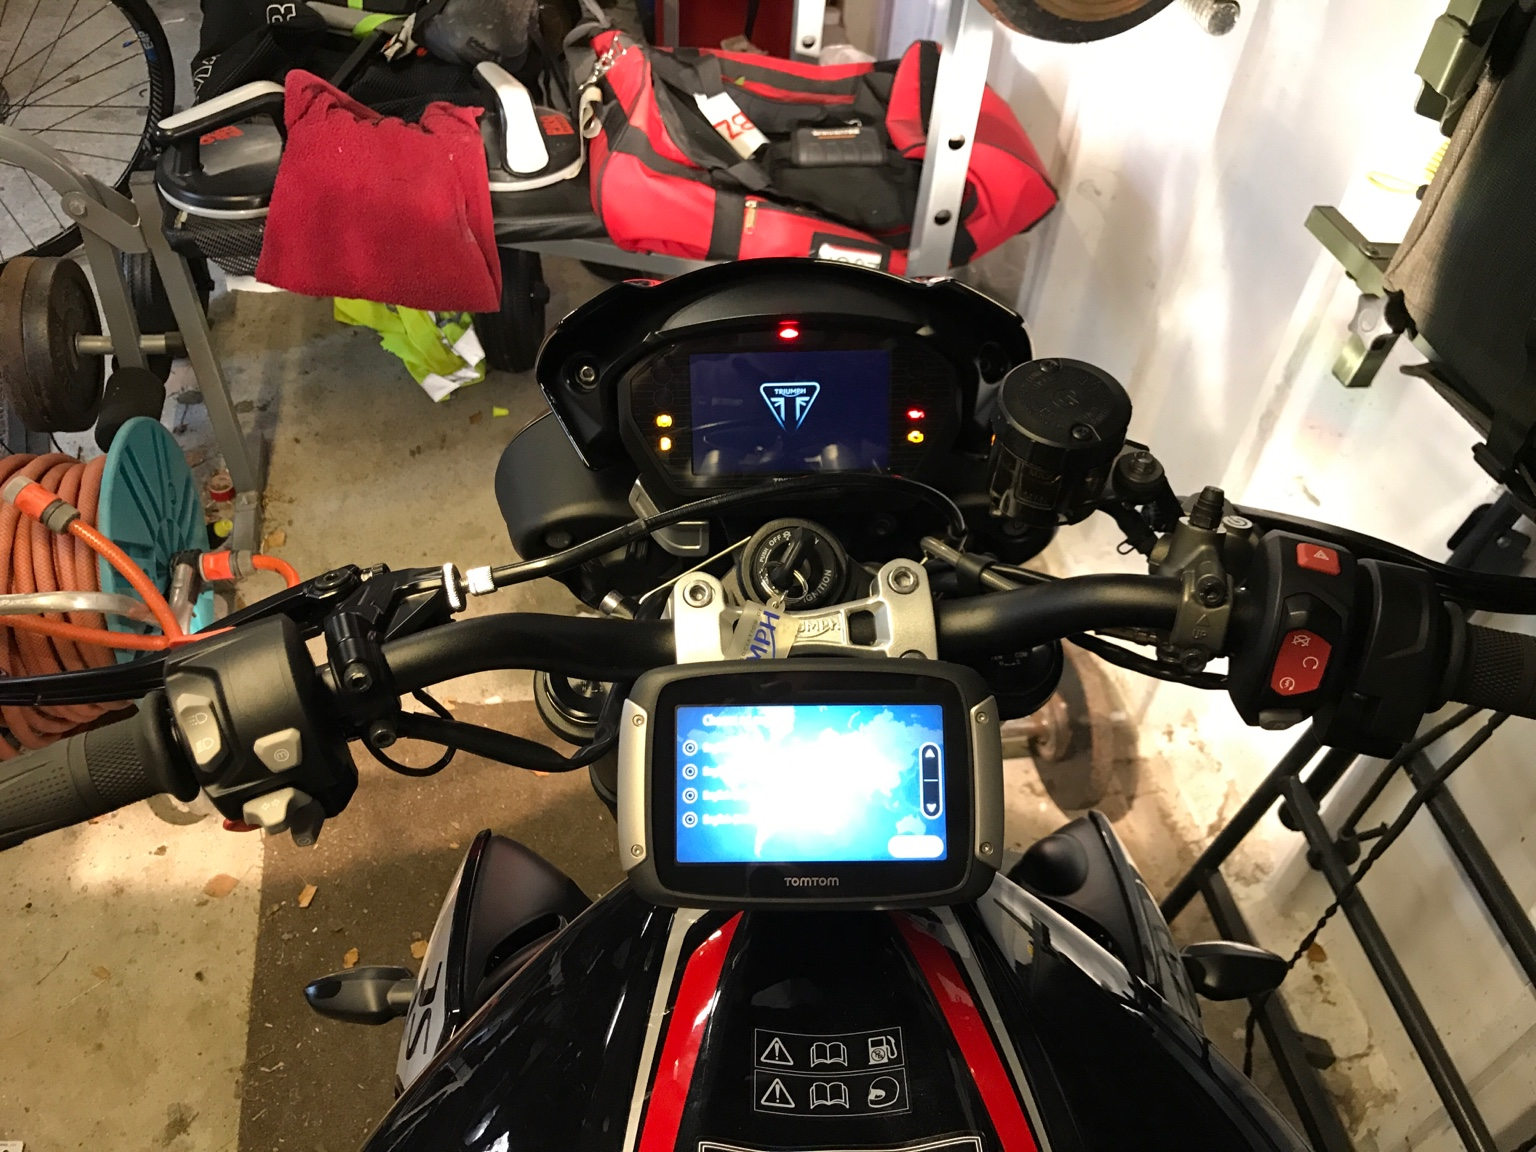 765rs Tomtom Rider 410 Fitted Pics